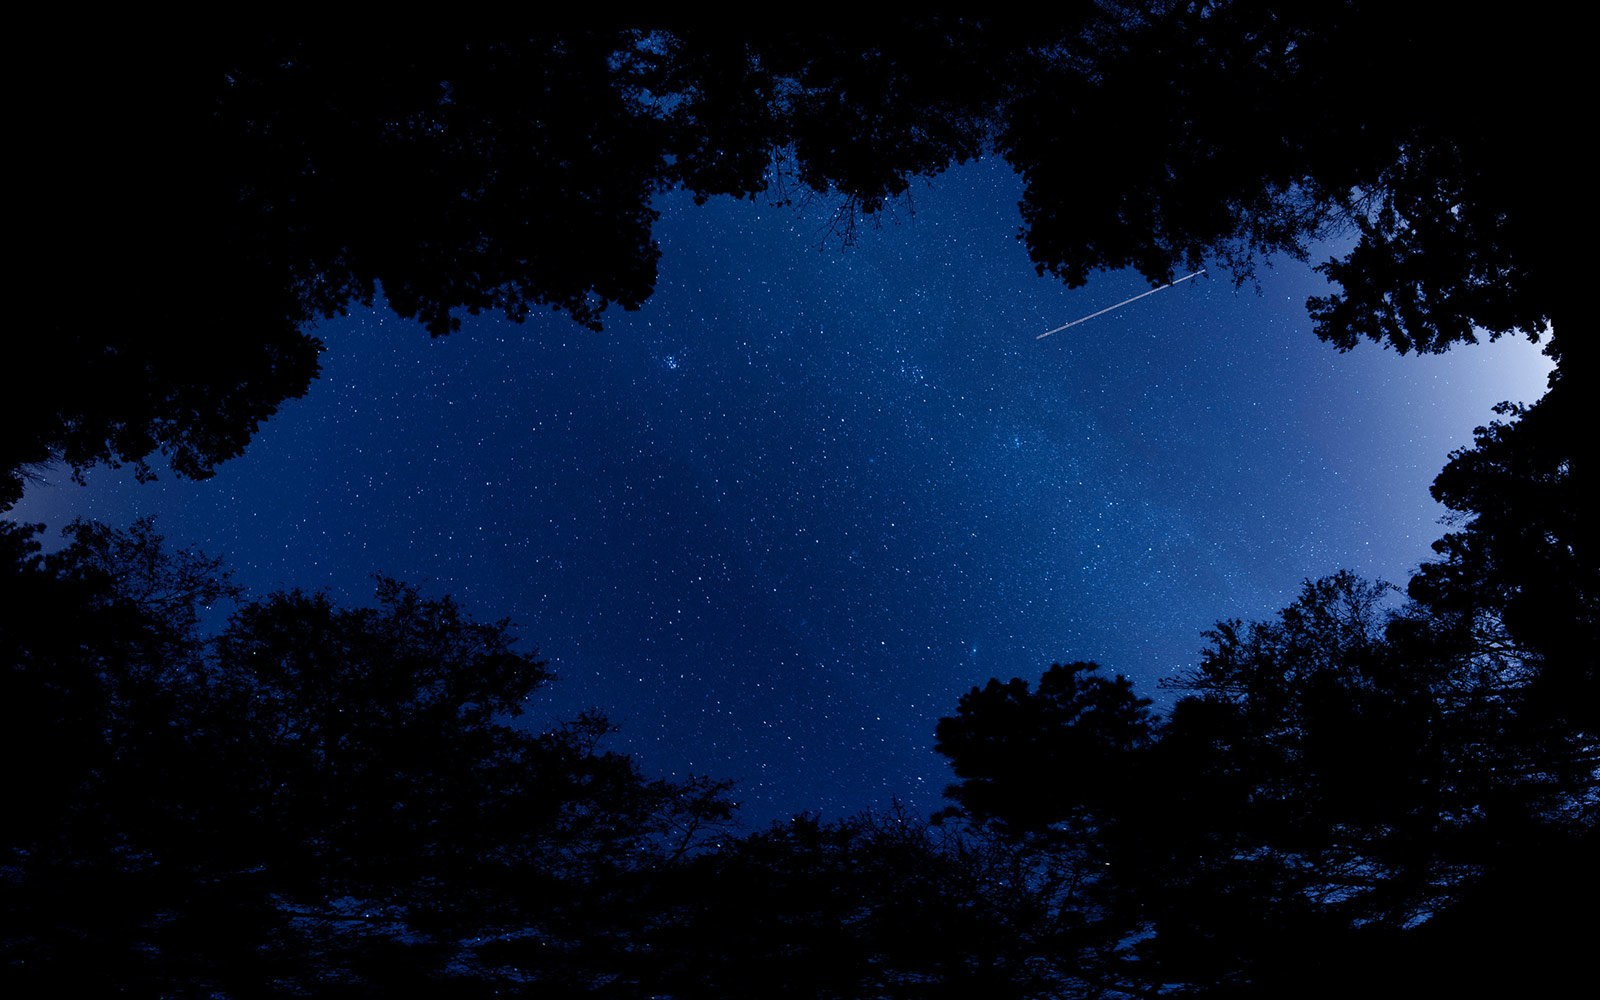 Stars from Bluff Trail, Congaree National Park, South Carolina